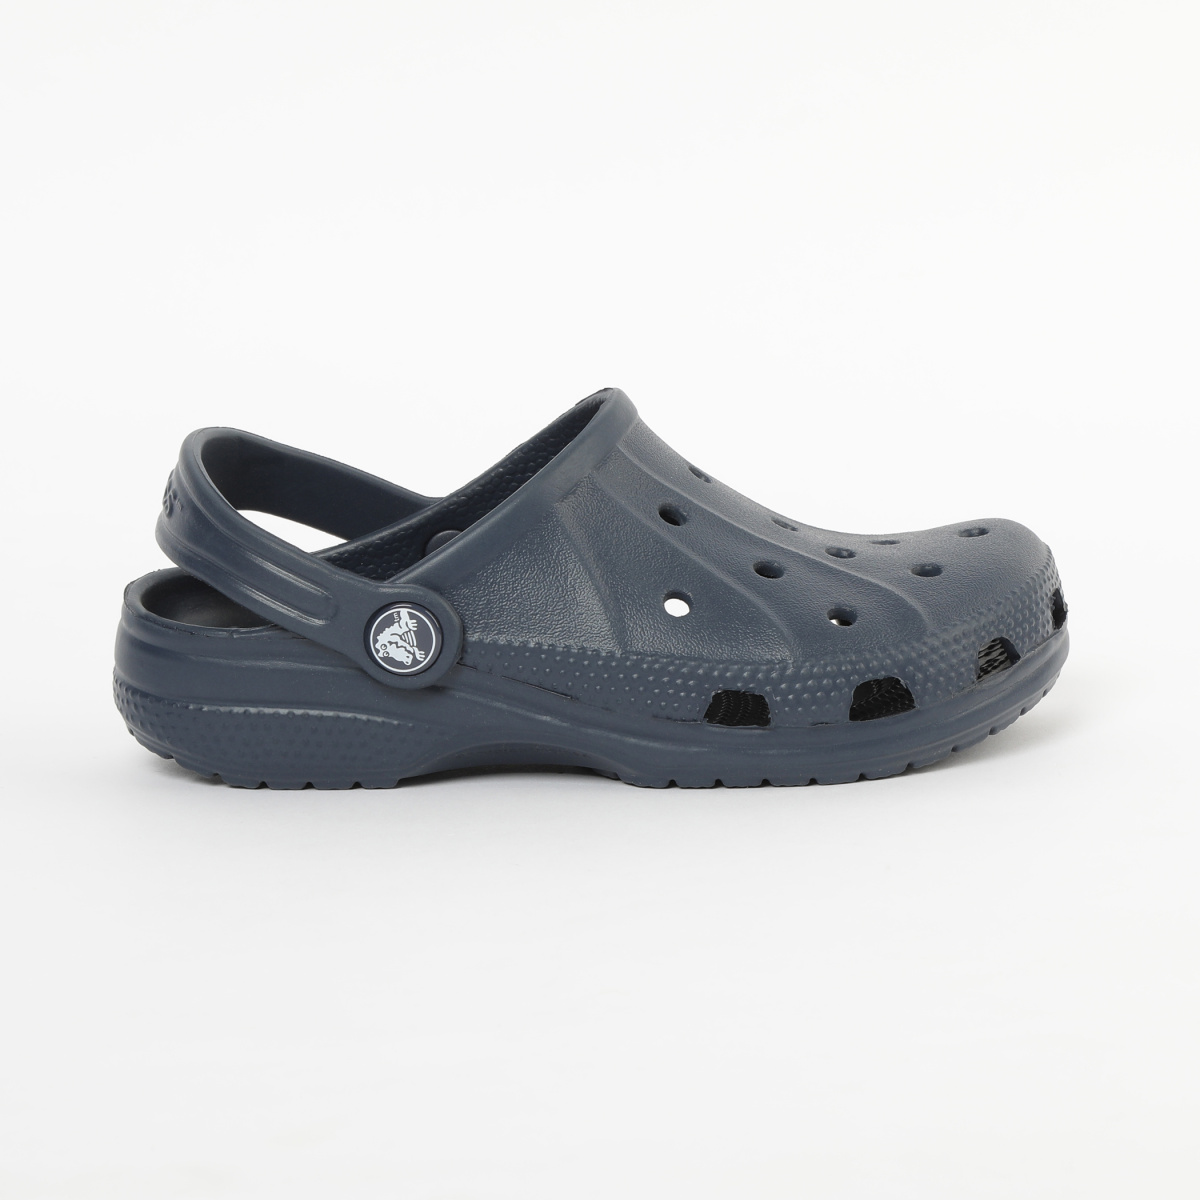 CROCS Textured Clogs